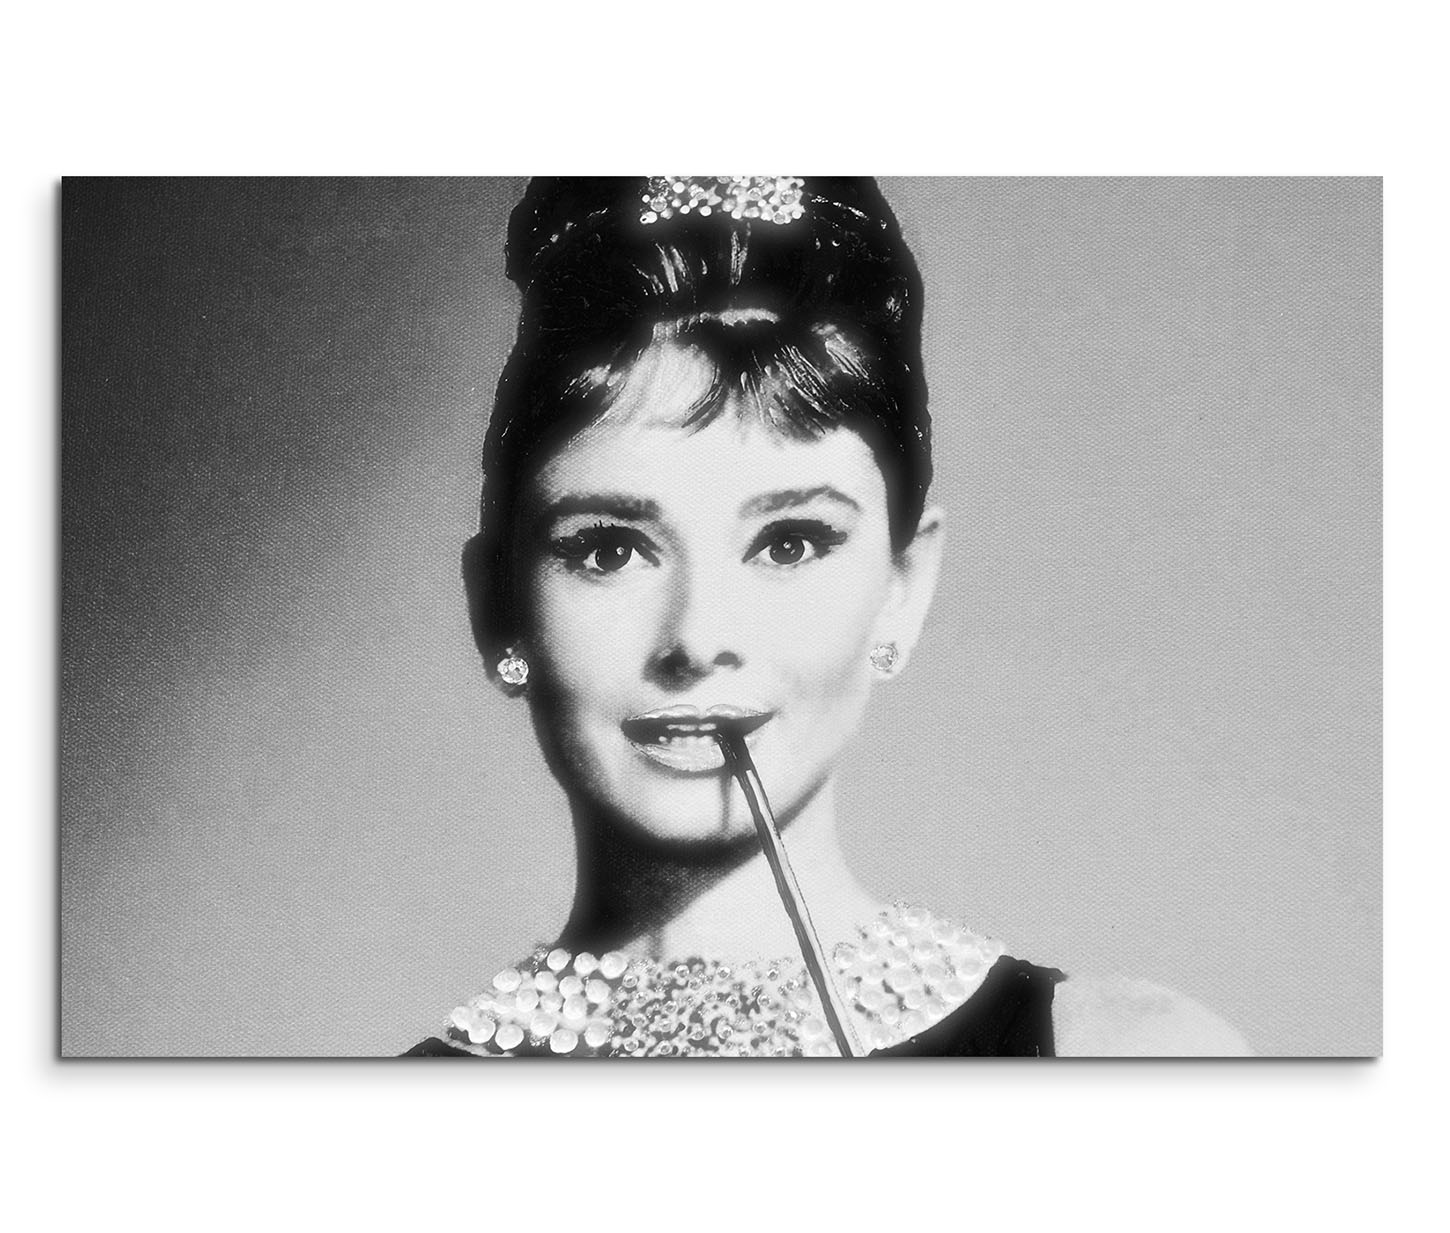 leinwandbild audrey hepburn portrait gesicht schwarz wei menschen foto leinwandbilder. Black Bedroom Furniture Sets. Home Design Ideas